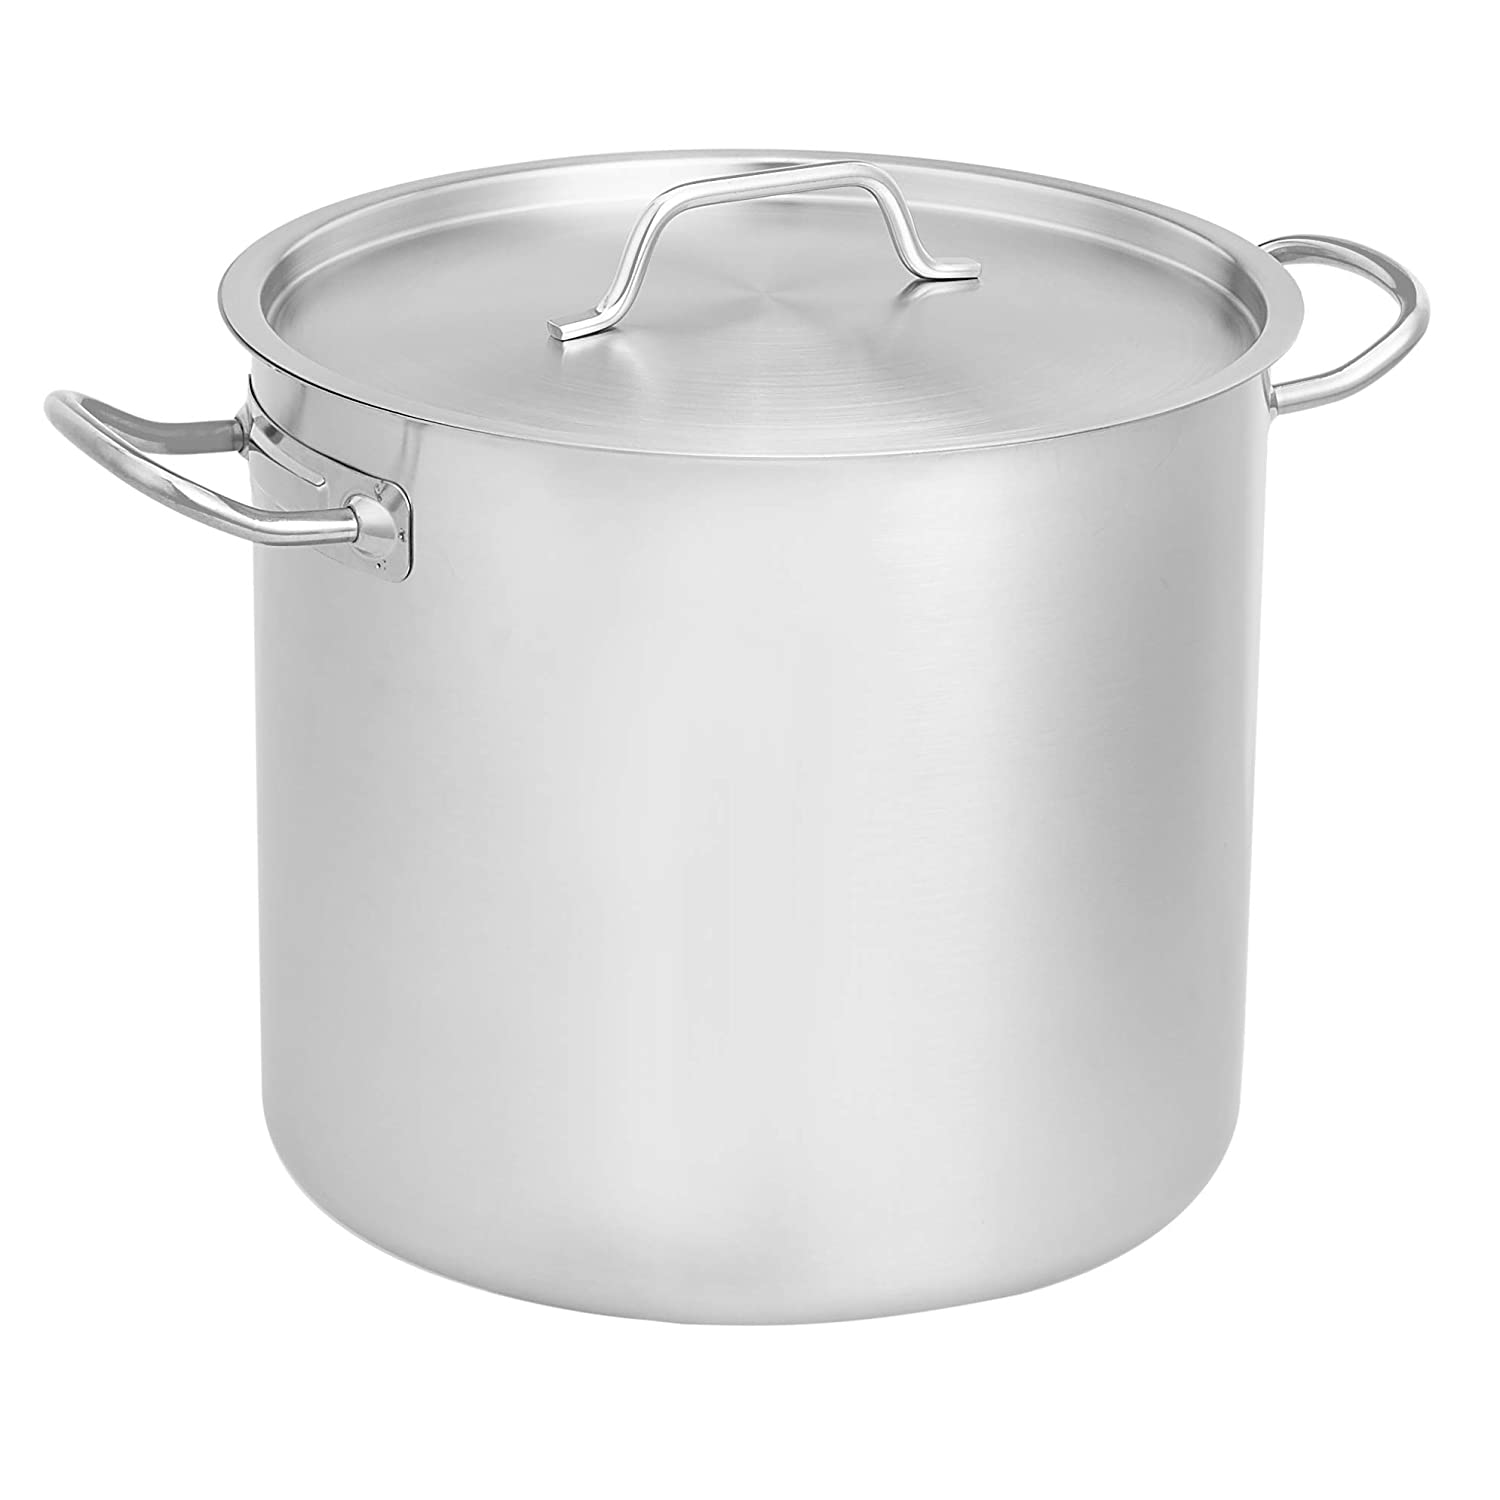 AmazonCommercial 20 Qt. Stainless Steel Aluminum-Clad Stock Pot with Cover